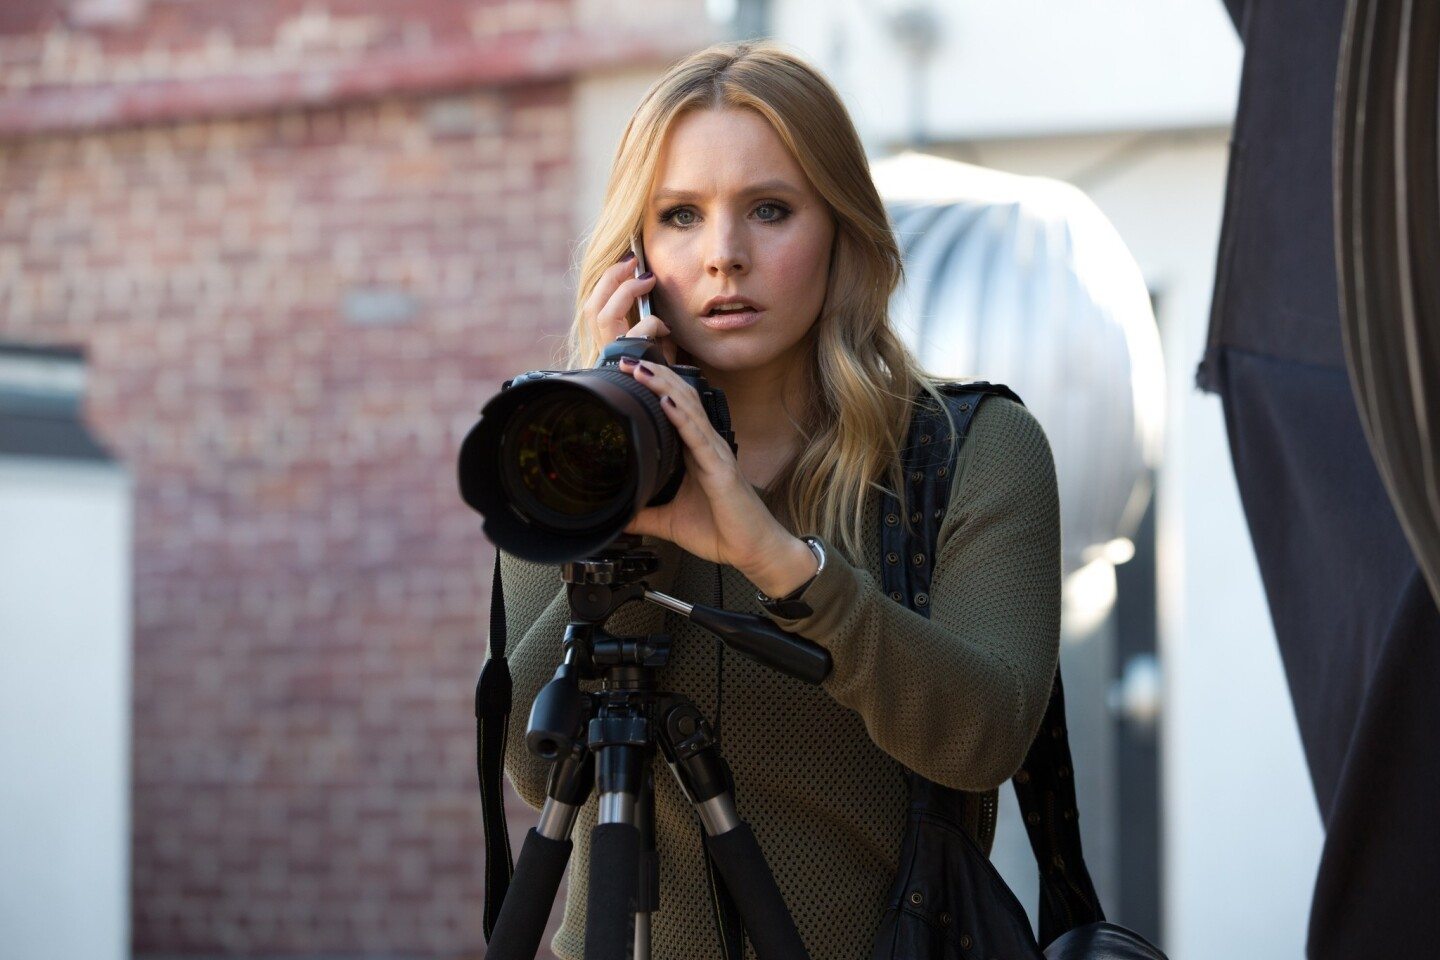 From film to TV, and vice versa | 'Veronica Mars'